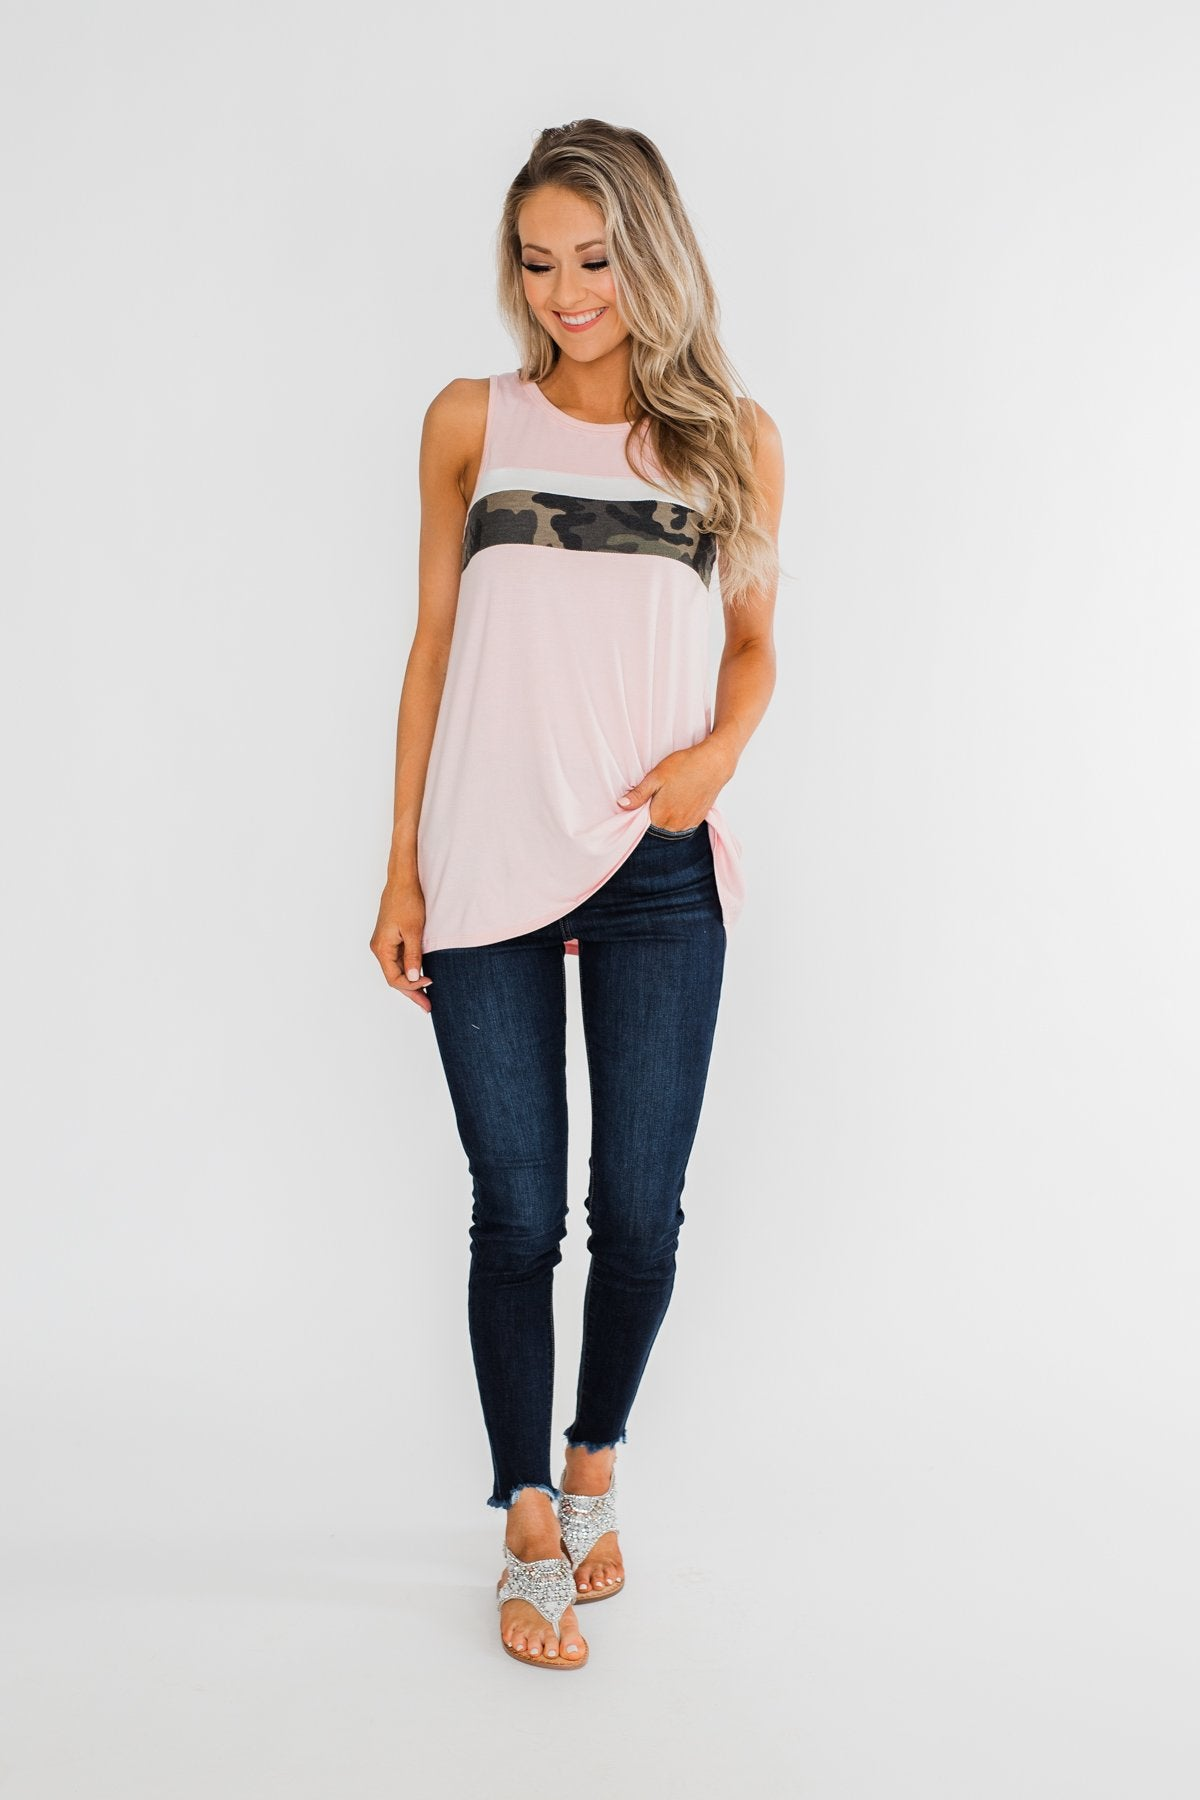 Just A Hint Of Camo Tank Top- Blush